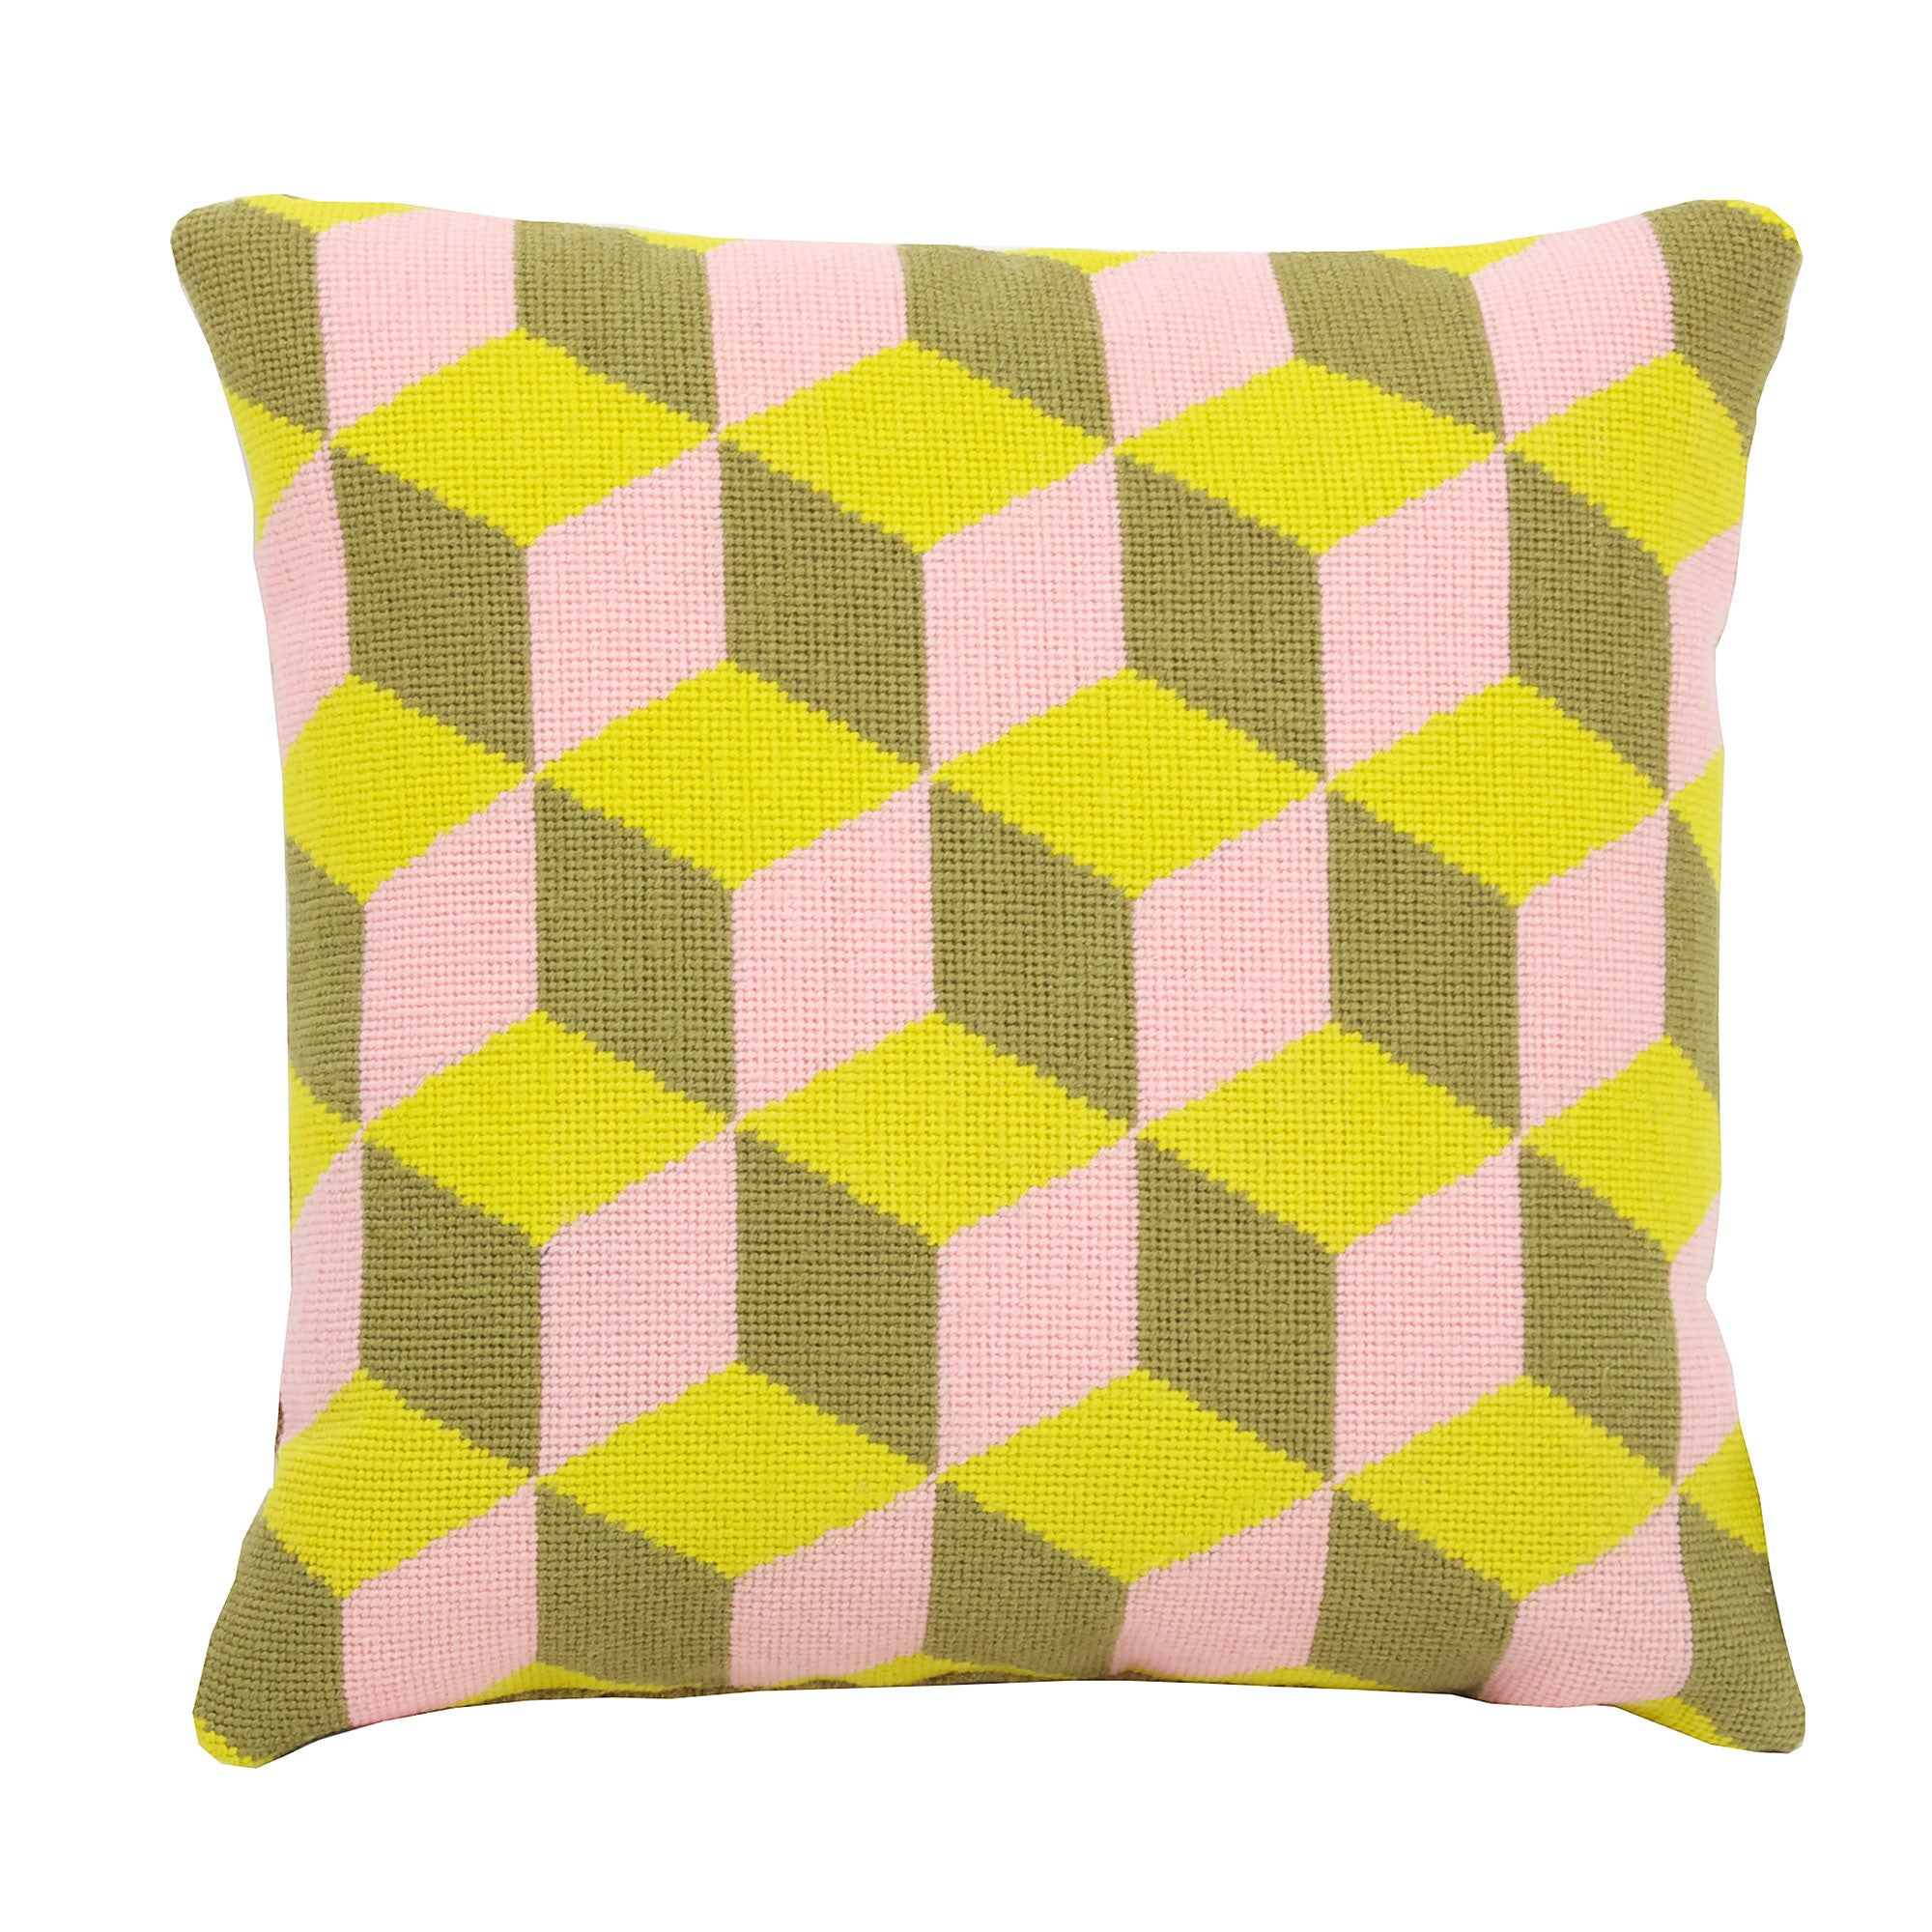 Pentreath & Hall for Fine Cell Work Falling Cubes Needlepoint Cushion Pink and Yellow